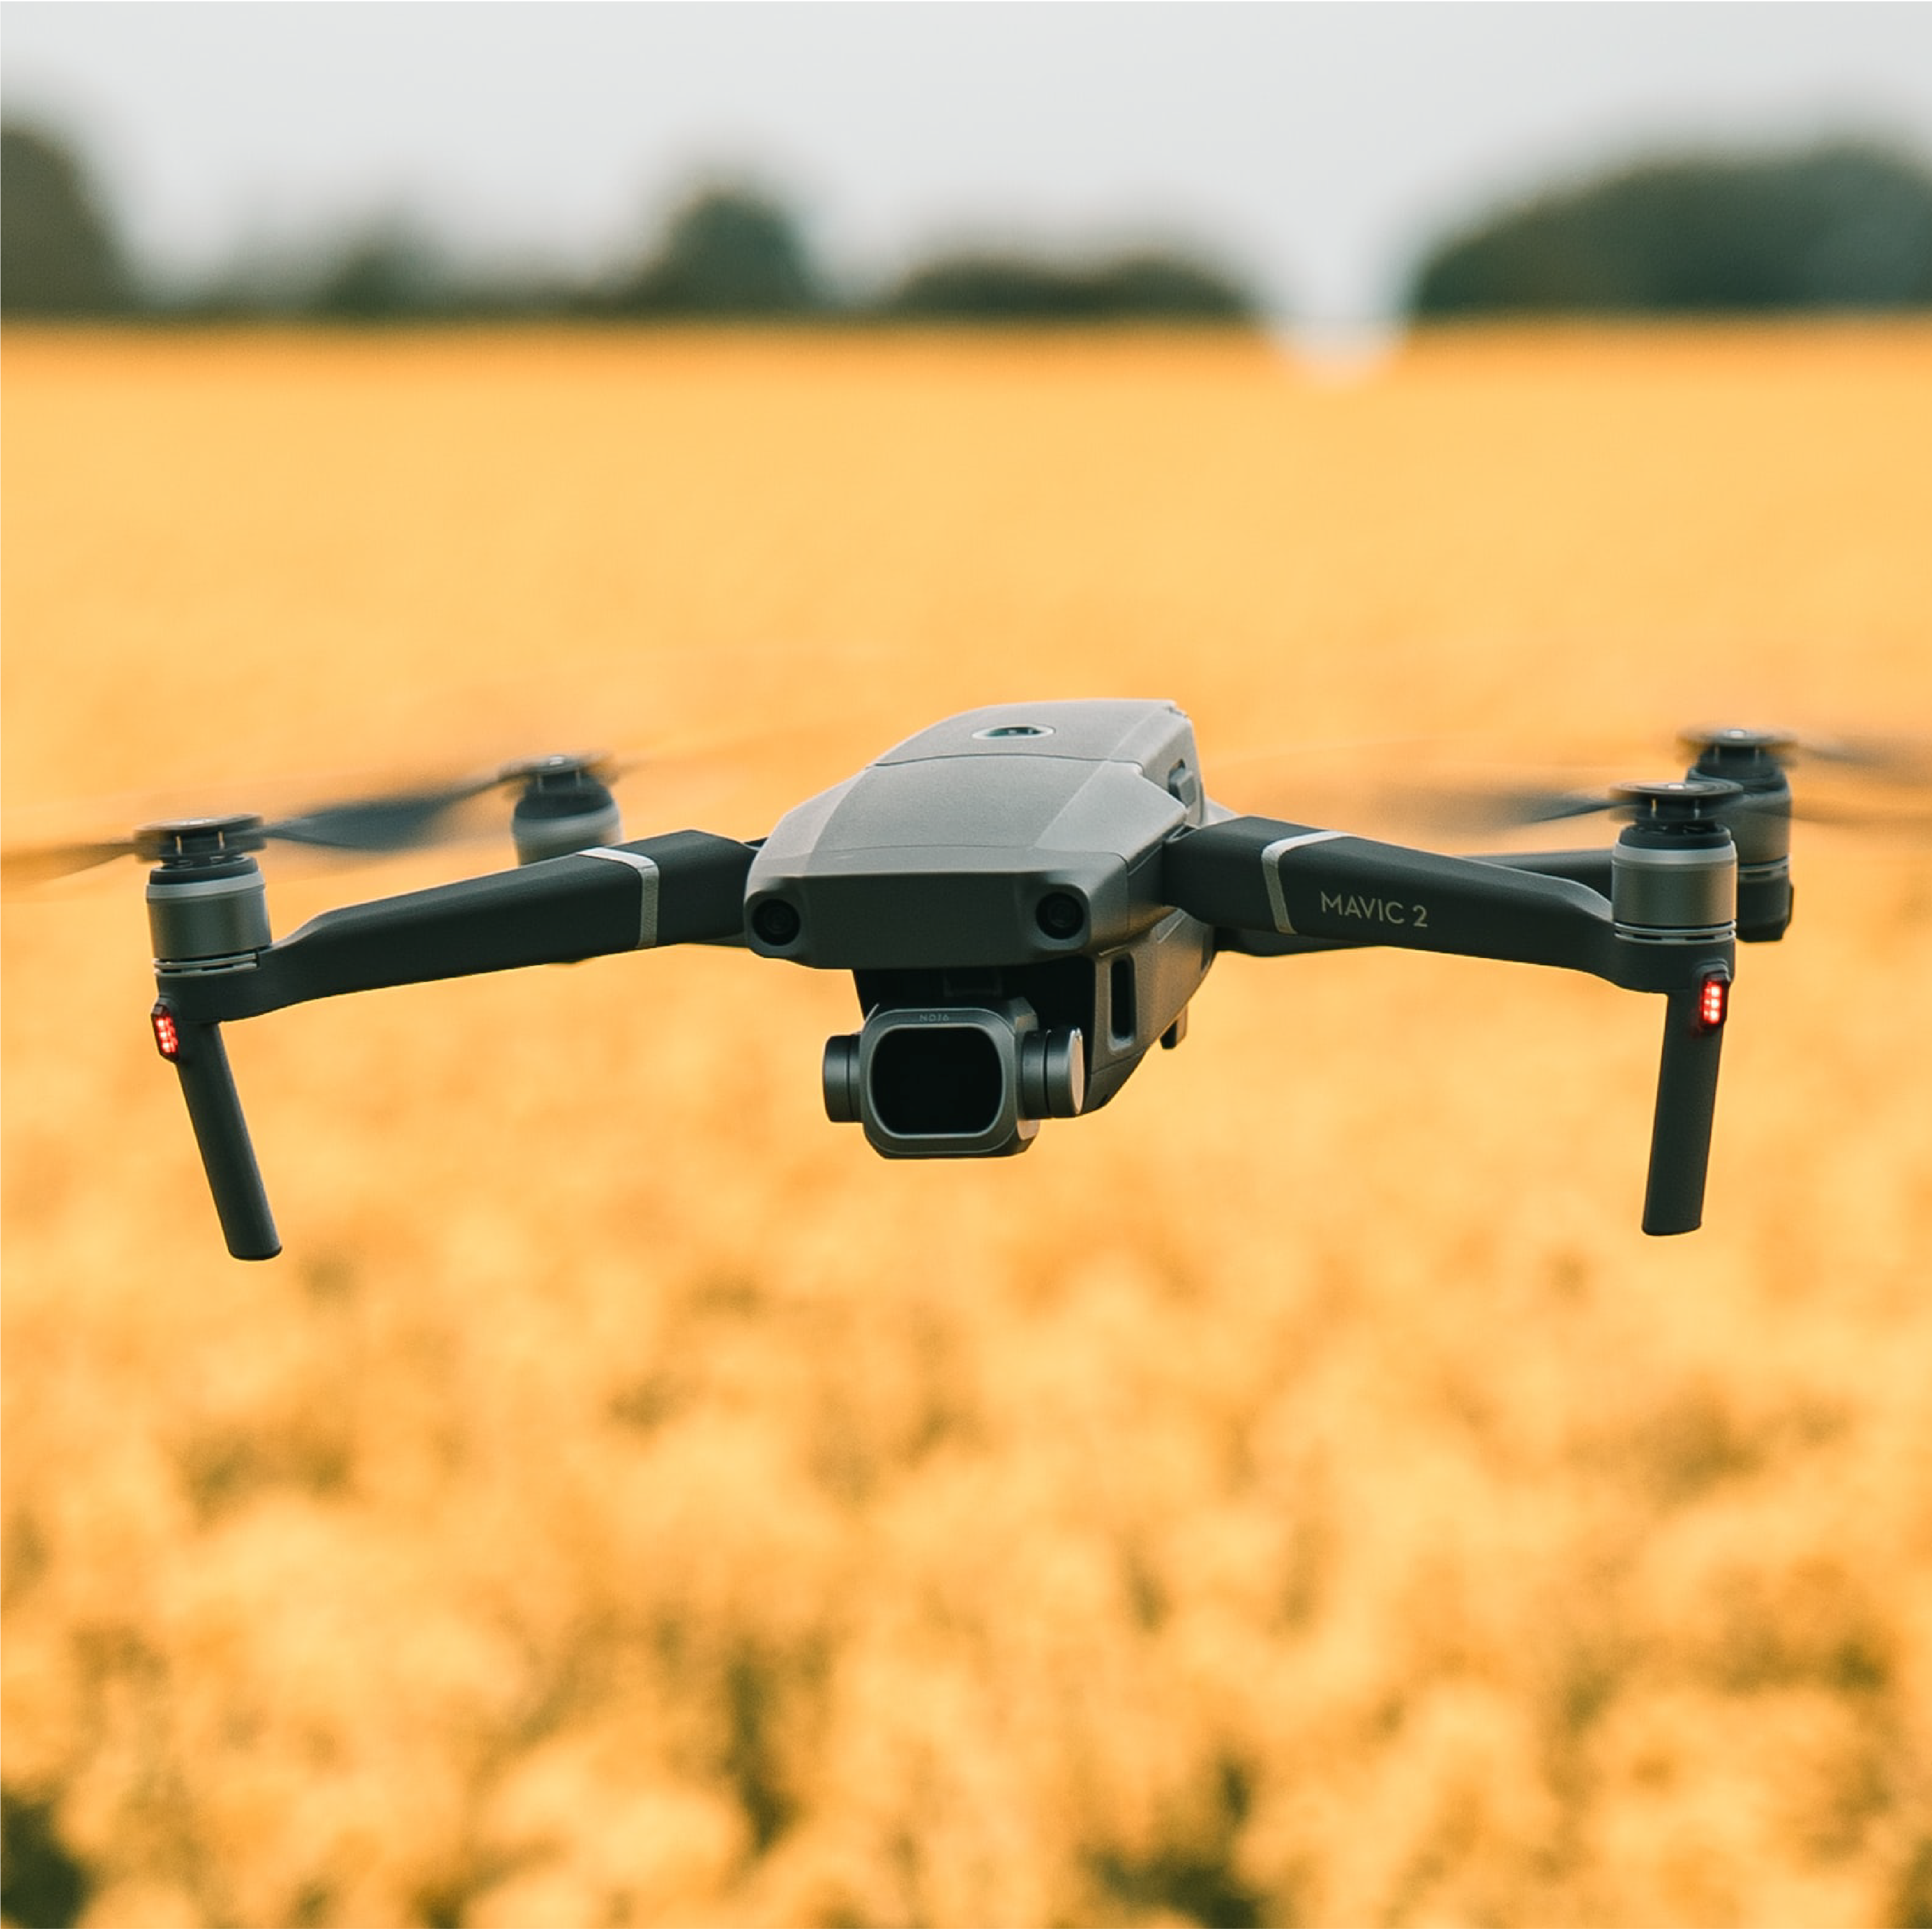 UAV, Artificial Intelligence, Machine Learning and Computer Vision Applications are now employed to evaluate field conditions, soil moisture, identify crop disease, predict weather and crop yields